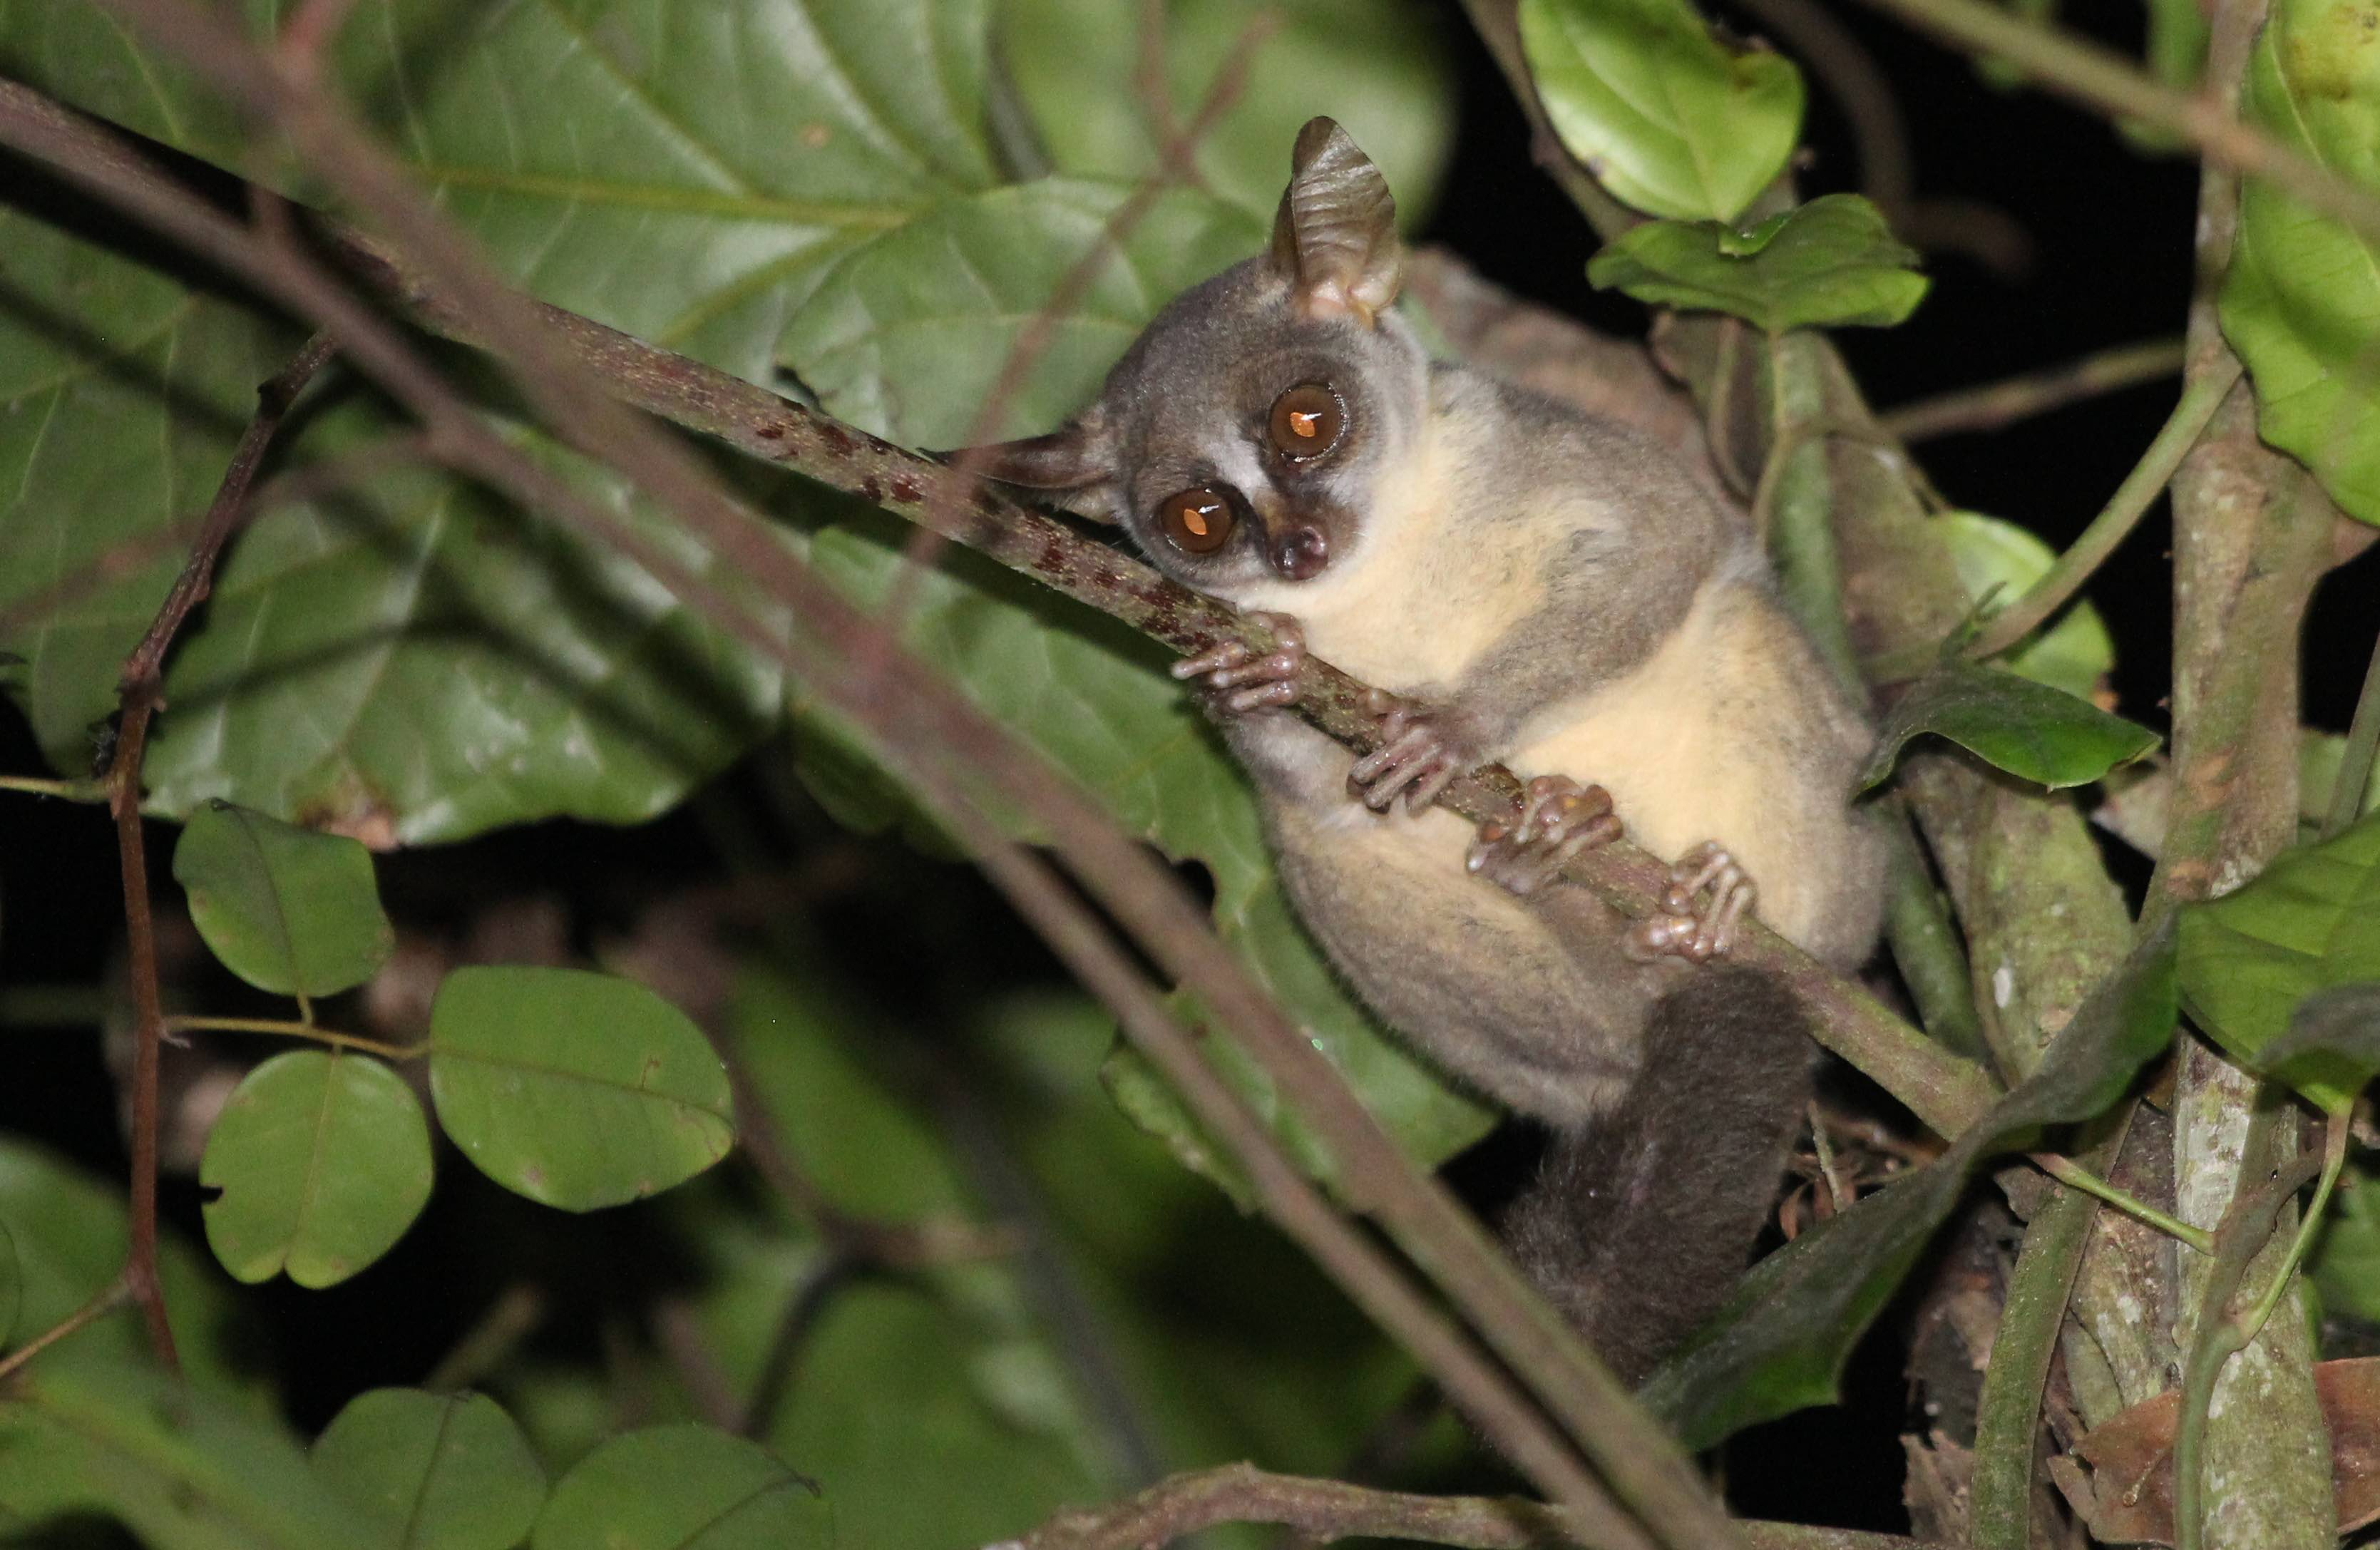 New species of animals discovered in 2017